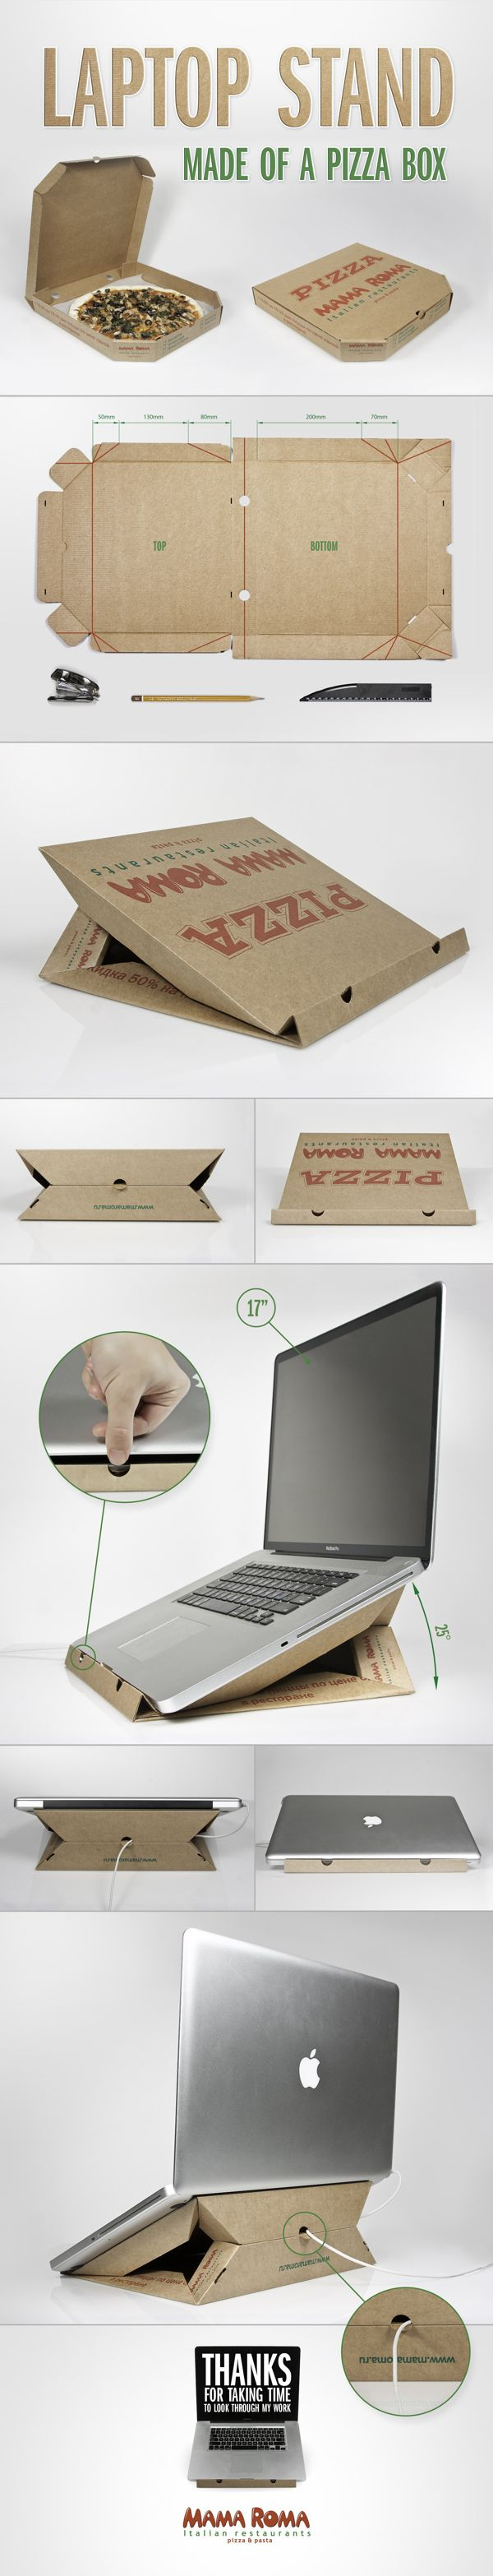 Laptop stand from a pizza box - 16 Brilliant and Easy DIY Ideas